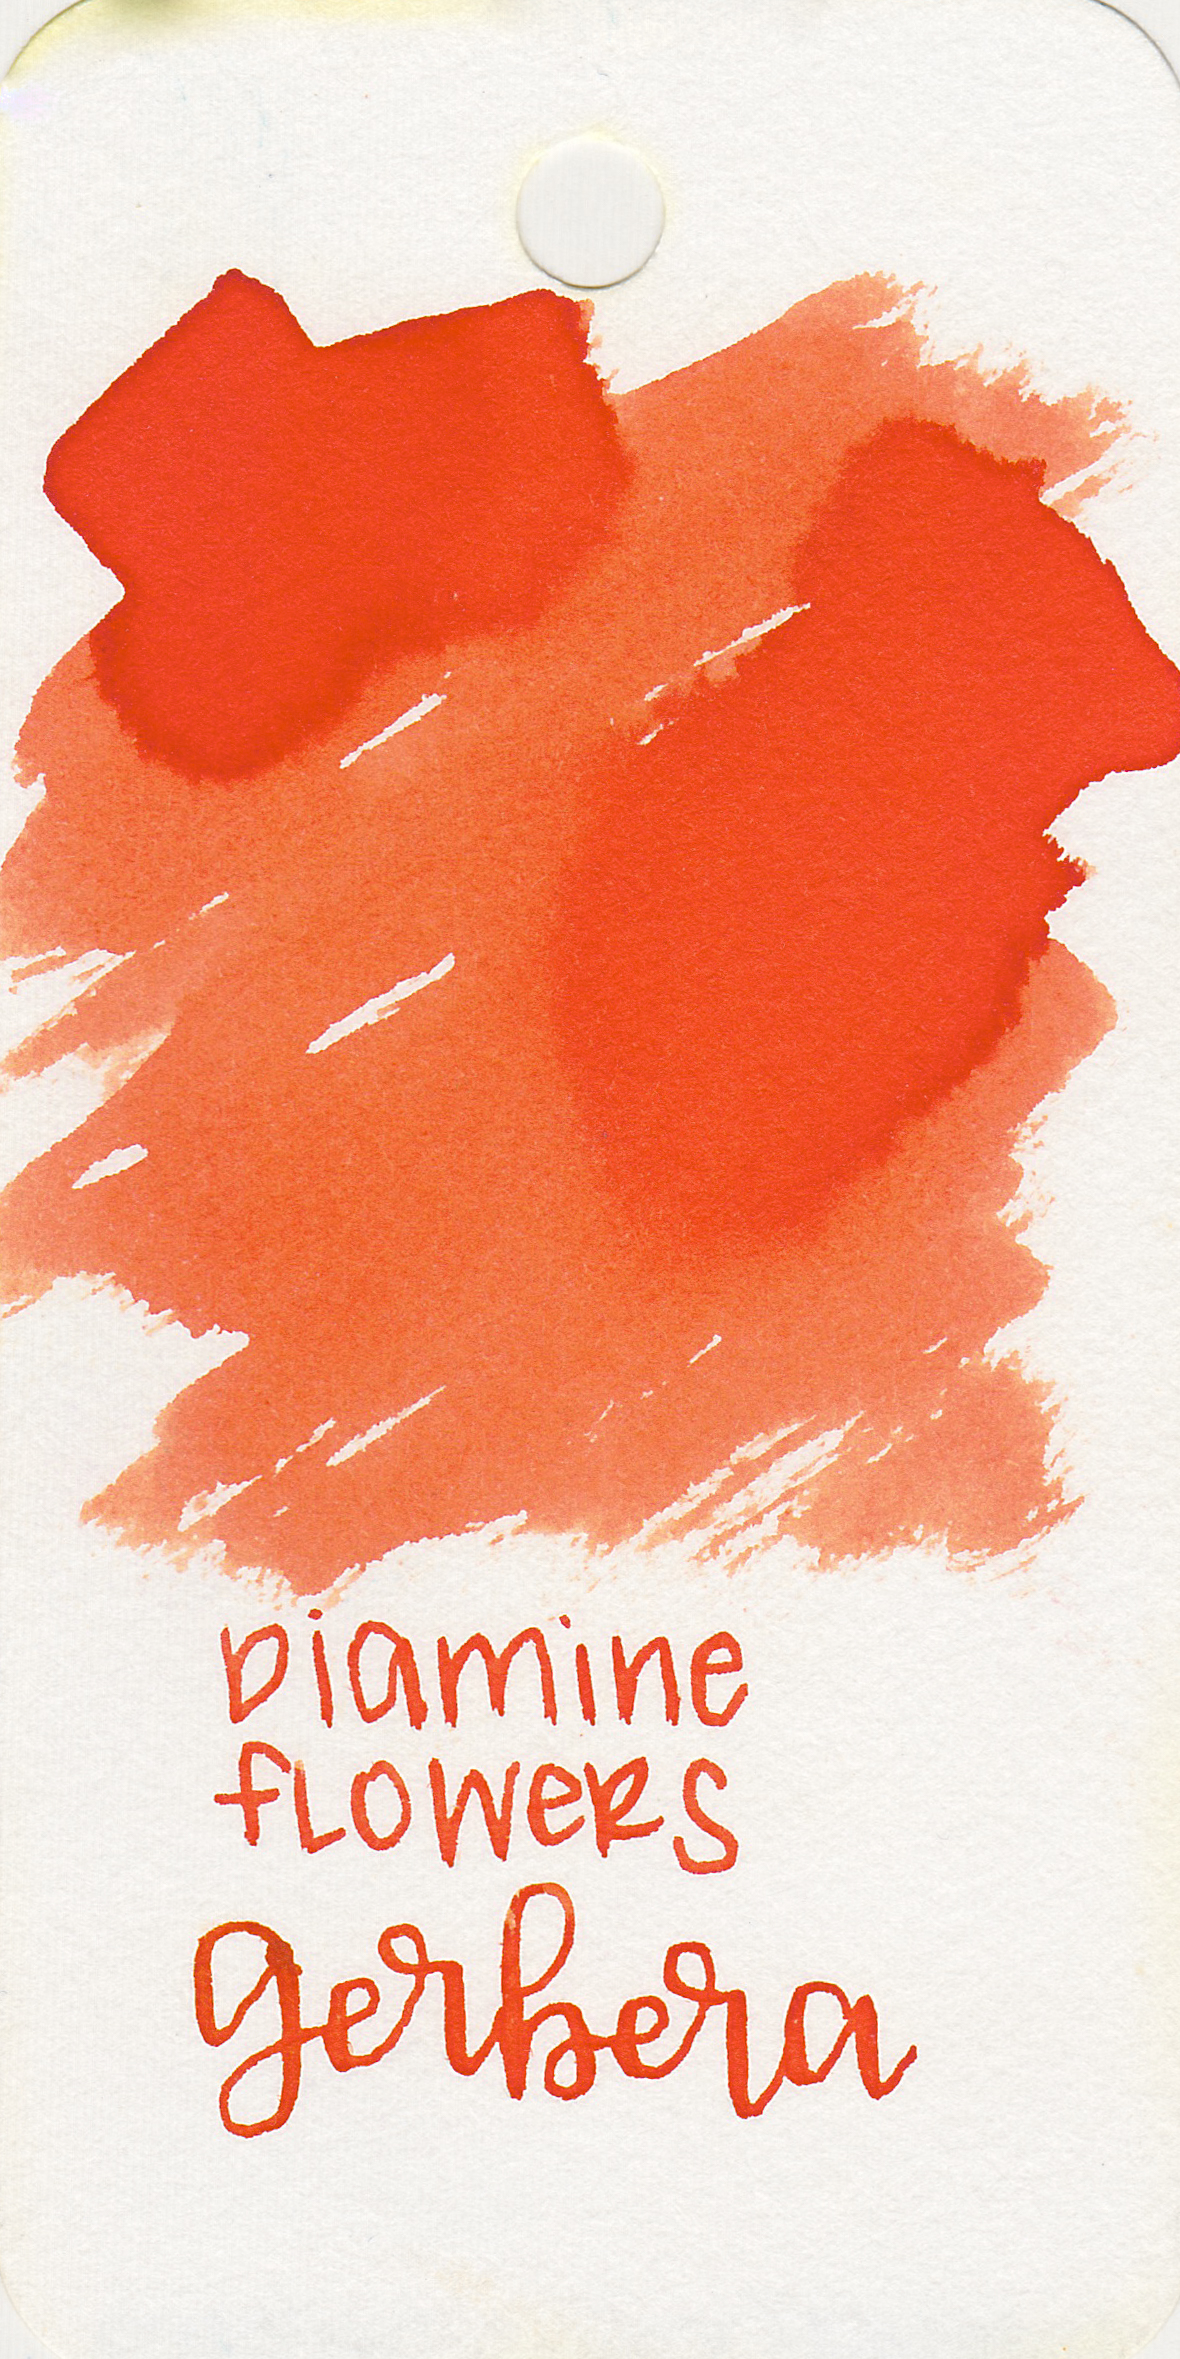 The color: - Gerbera is a beautiful orange. I don't usually like orange inks that much, but I love this color.